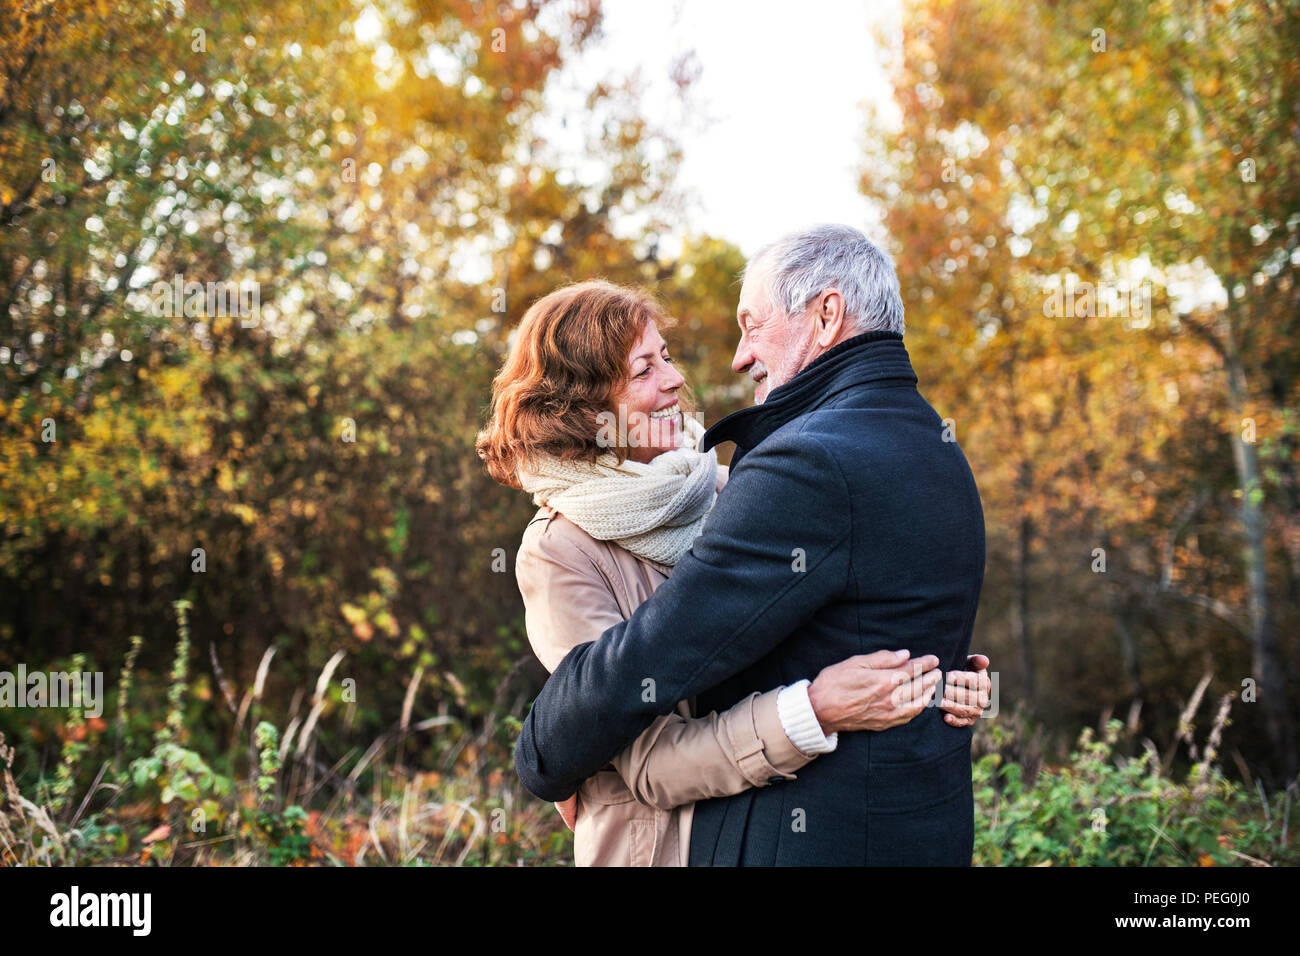 Senior couple looking at each other in an autumn nature, hugging. - Stock Image